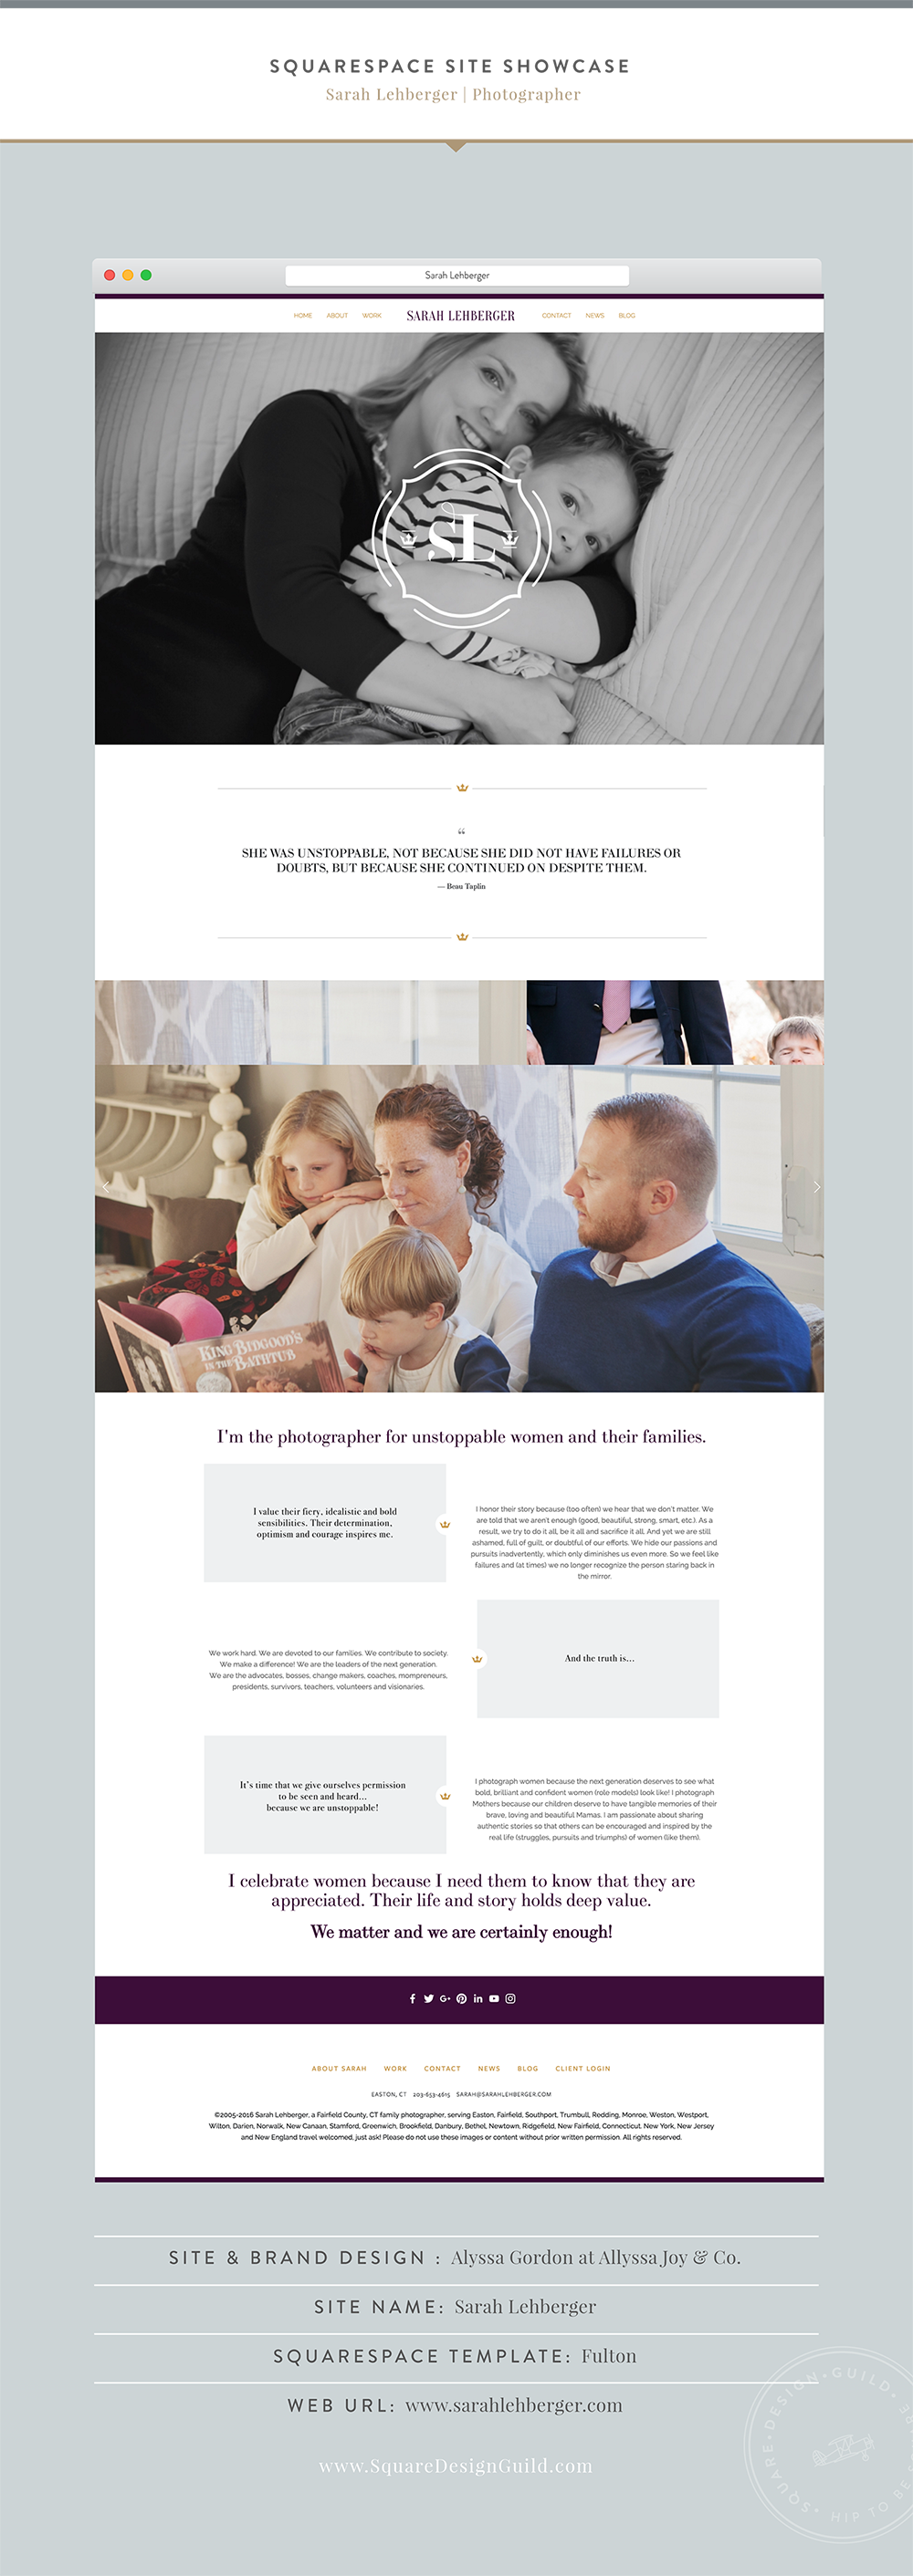 Squarespace Design Guild | Site Showcase | Alyssa Joy & Co - Sarah Lehberger Site Fulton Template